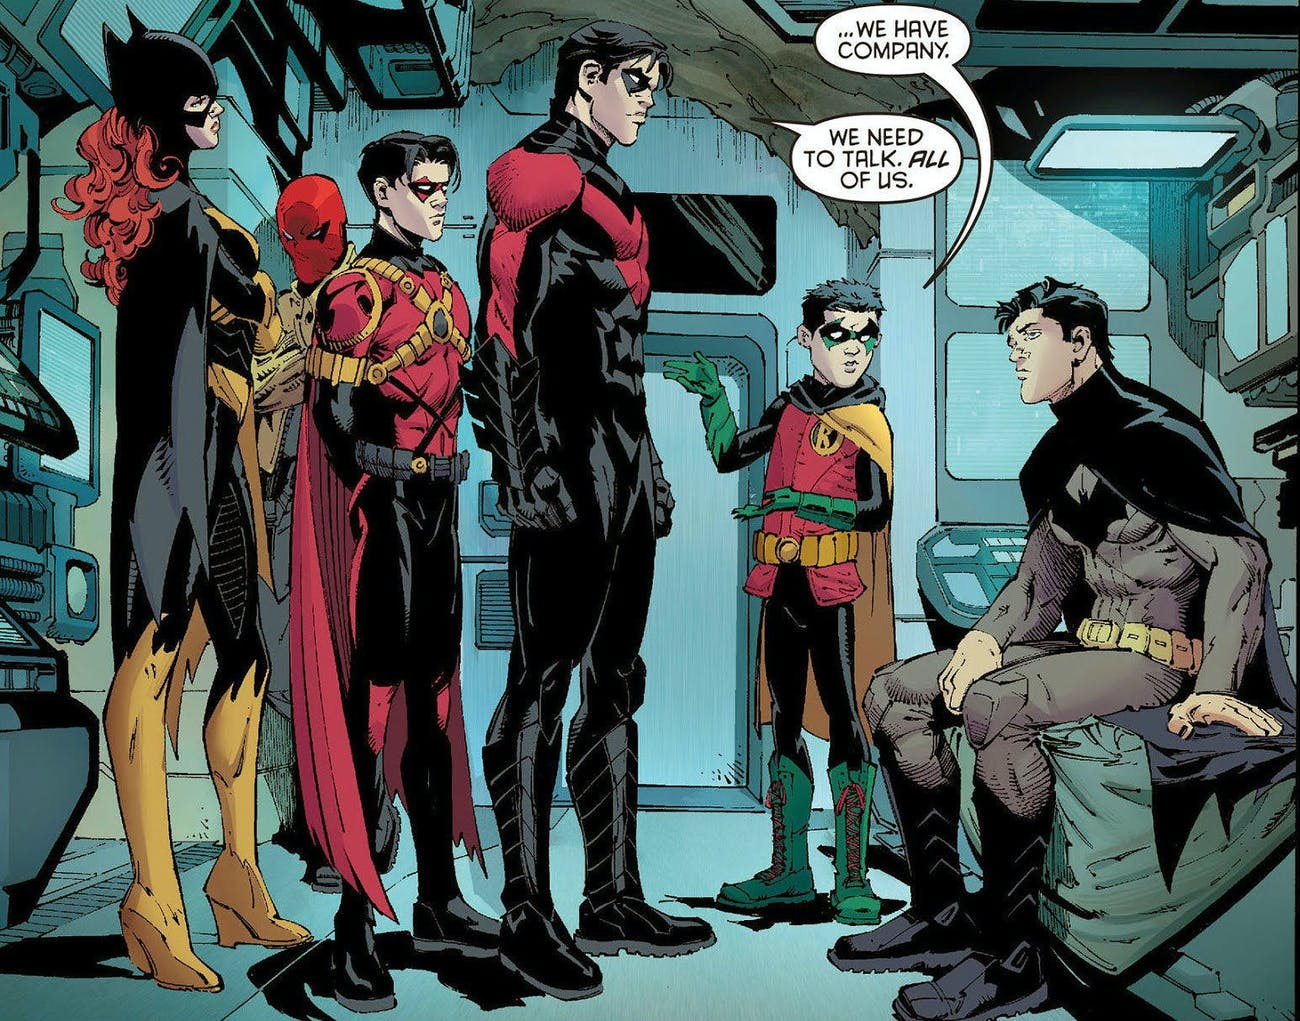 The Bat Family address Bruce Wayne.